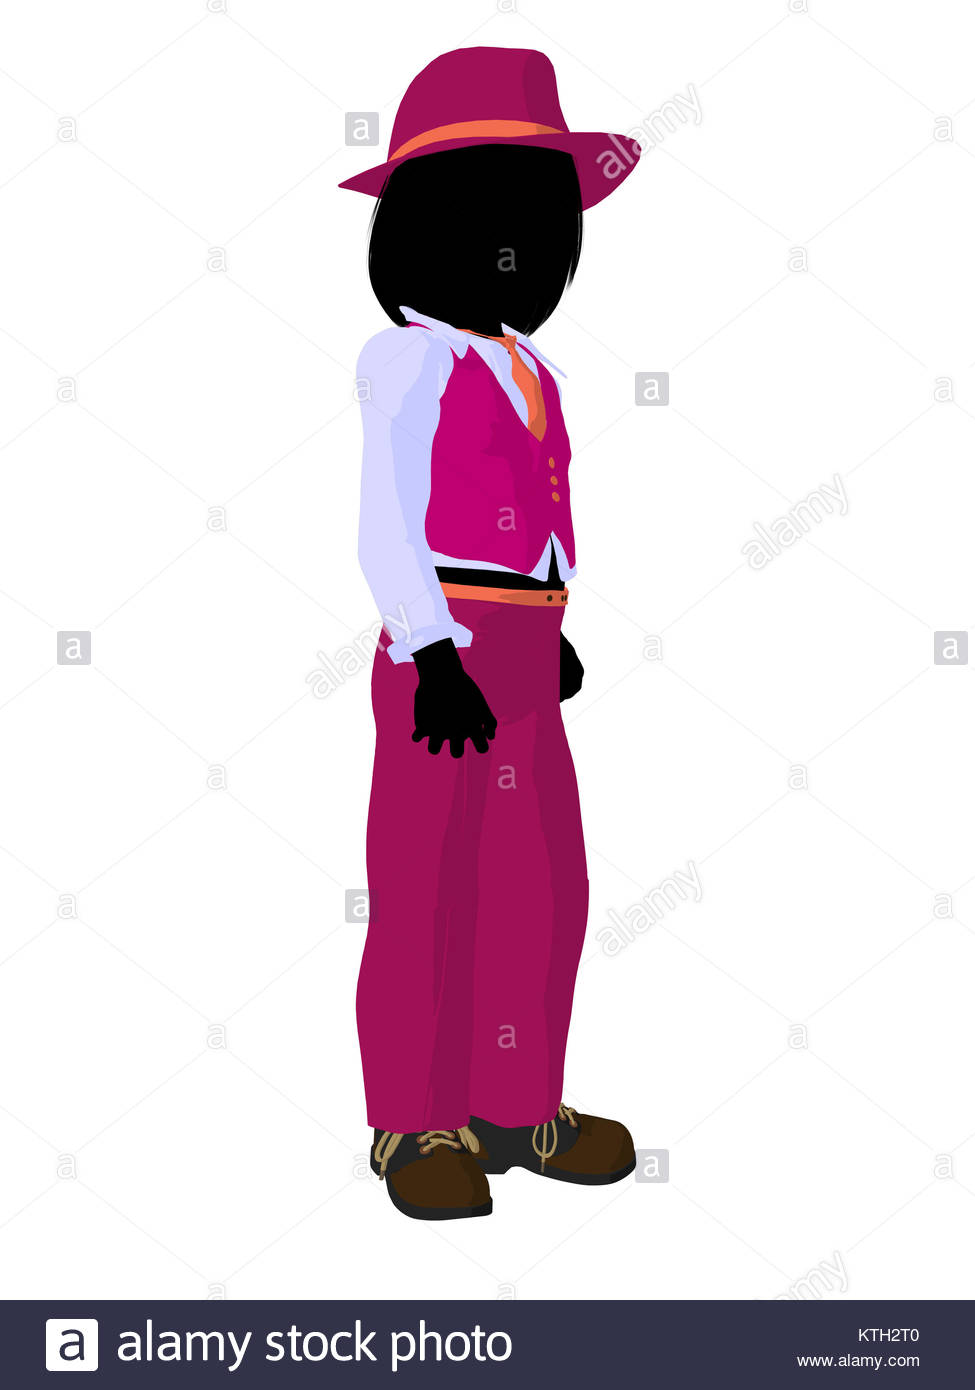 975x1390 Teen Business Silhouette Illustration On A White Background Stock